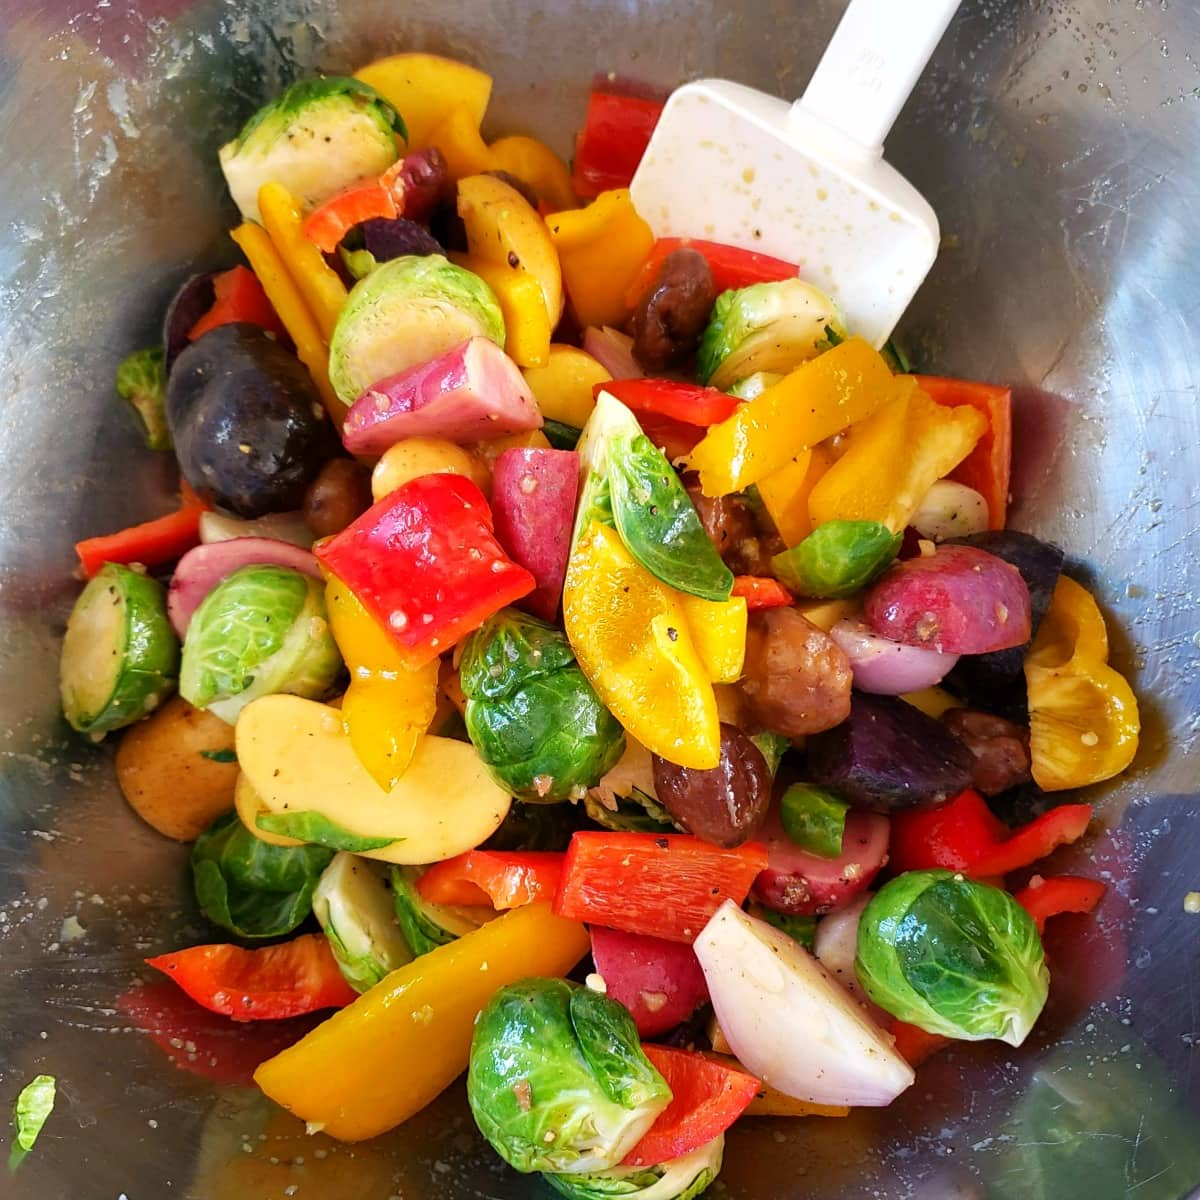 Stir dressing into the vegetables